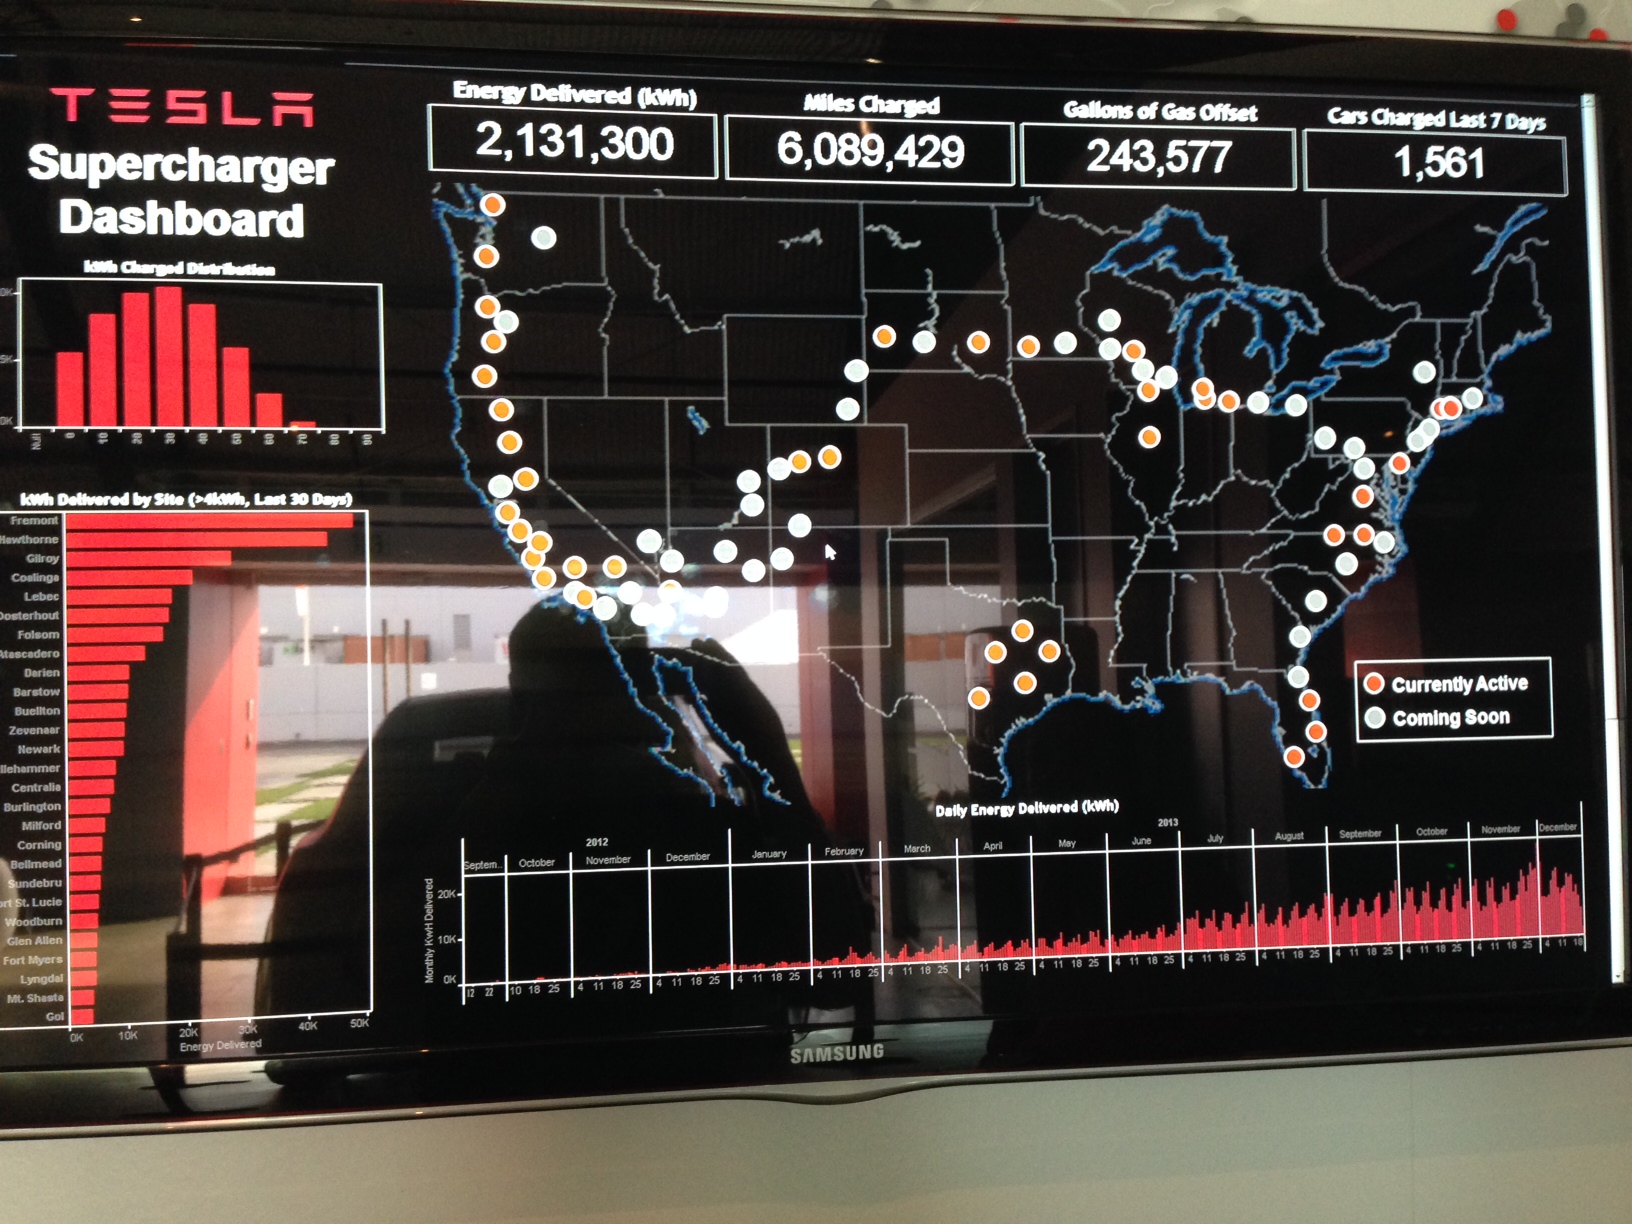 tesla_dashboard.JPG